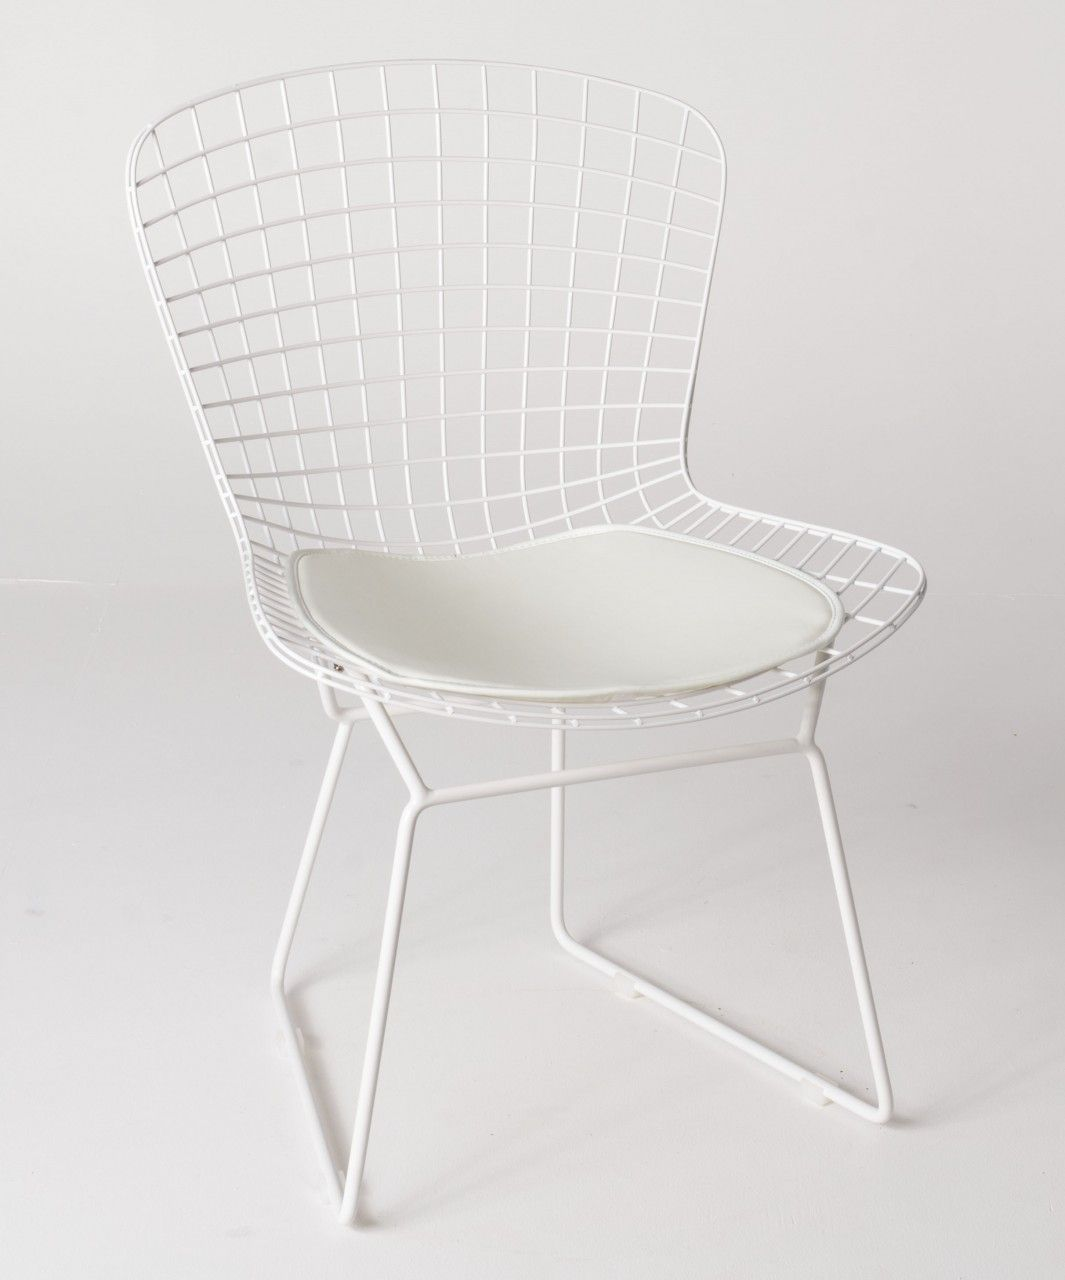 Attirant Replica Bird Chair By Harry Bertoia. Email Us For The Best Price Guaranteed!